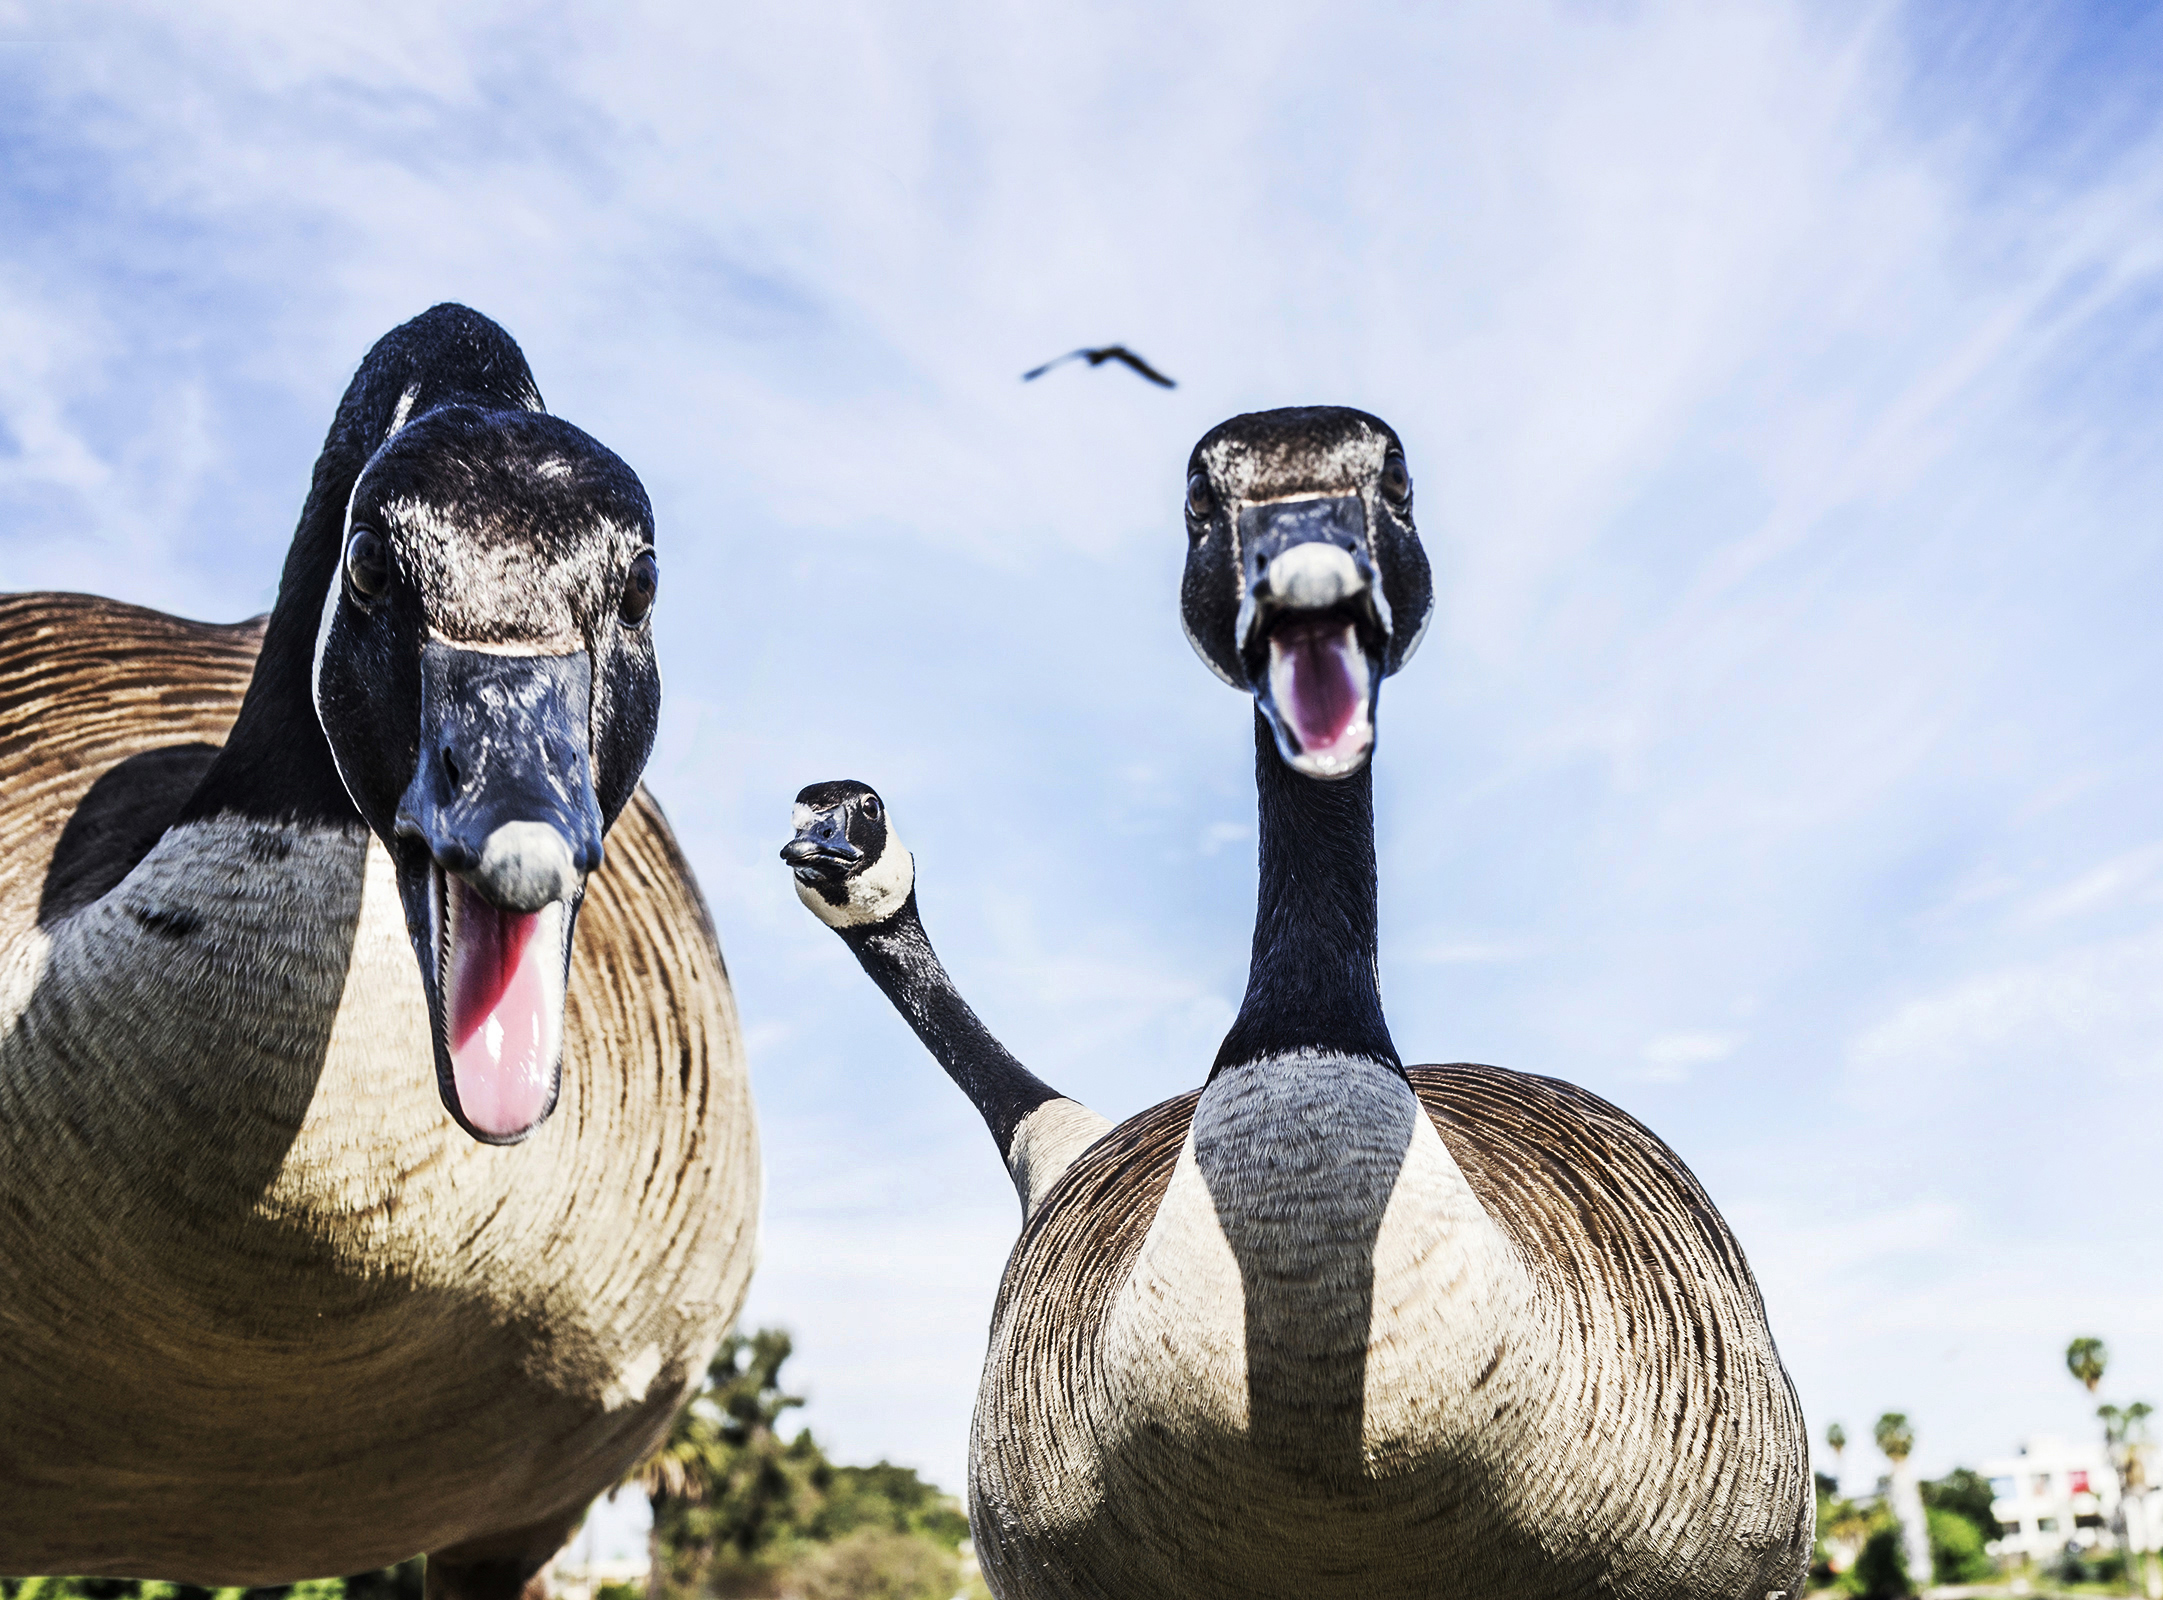 do not mess with the MacArthur Park geese, they will fuck you up